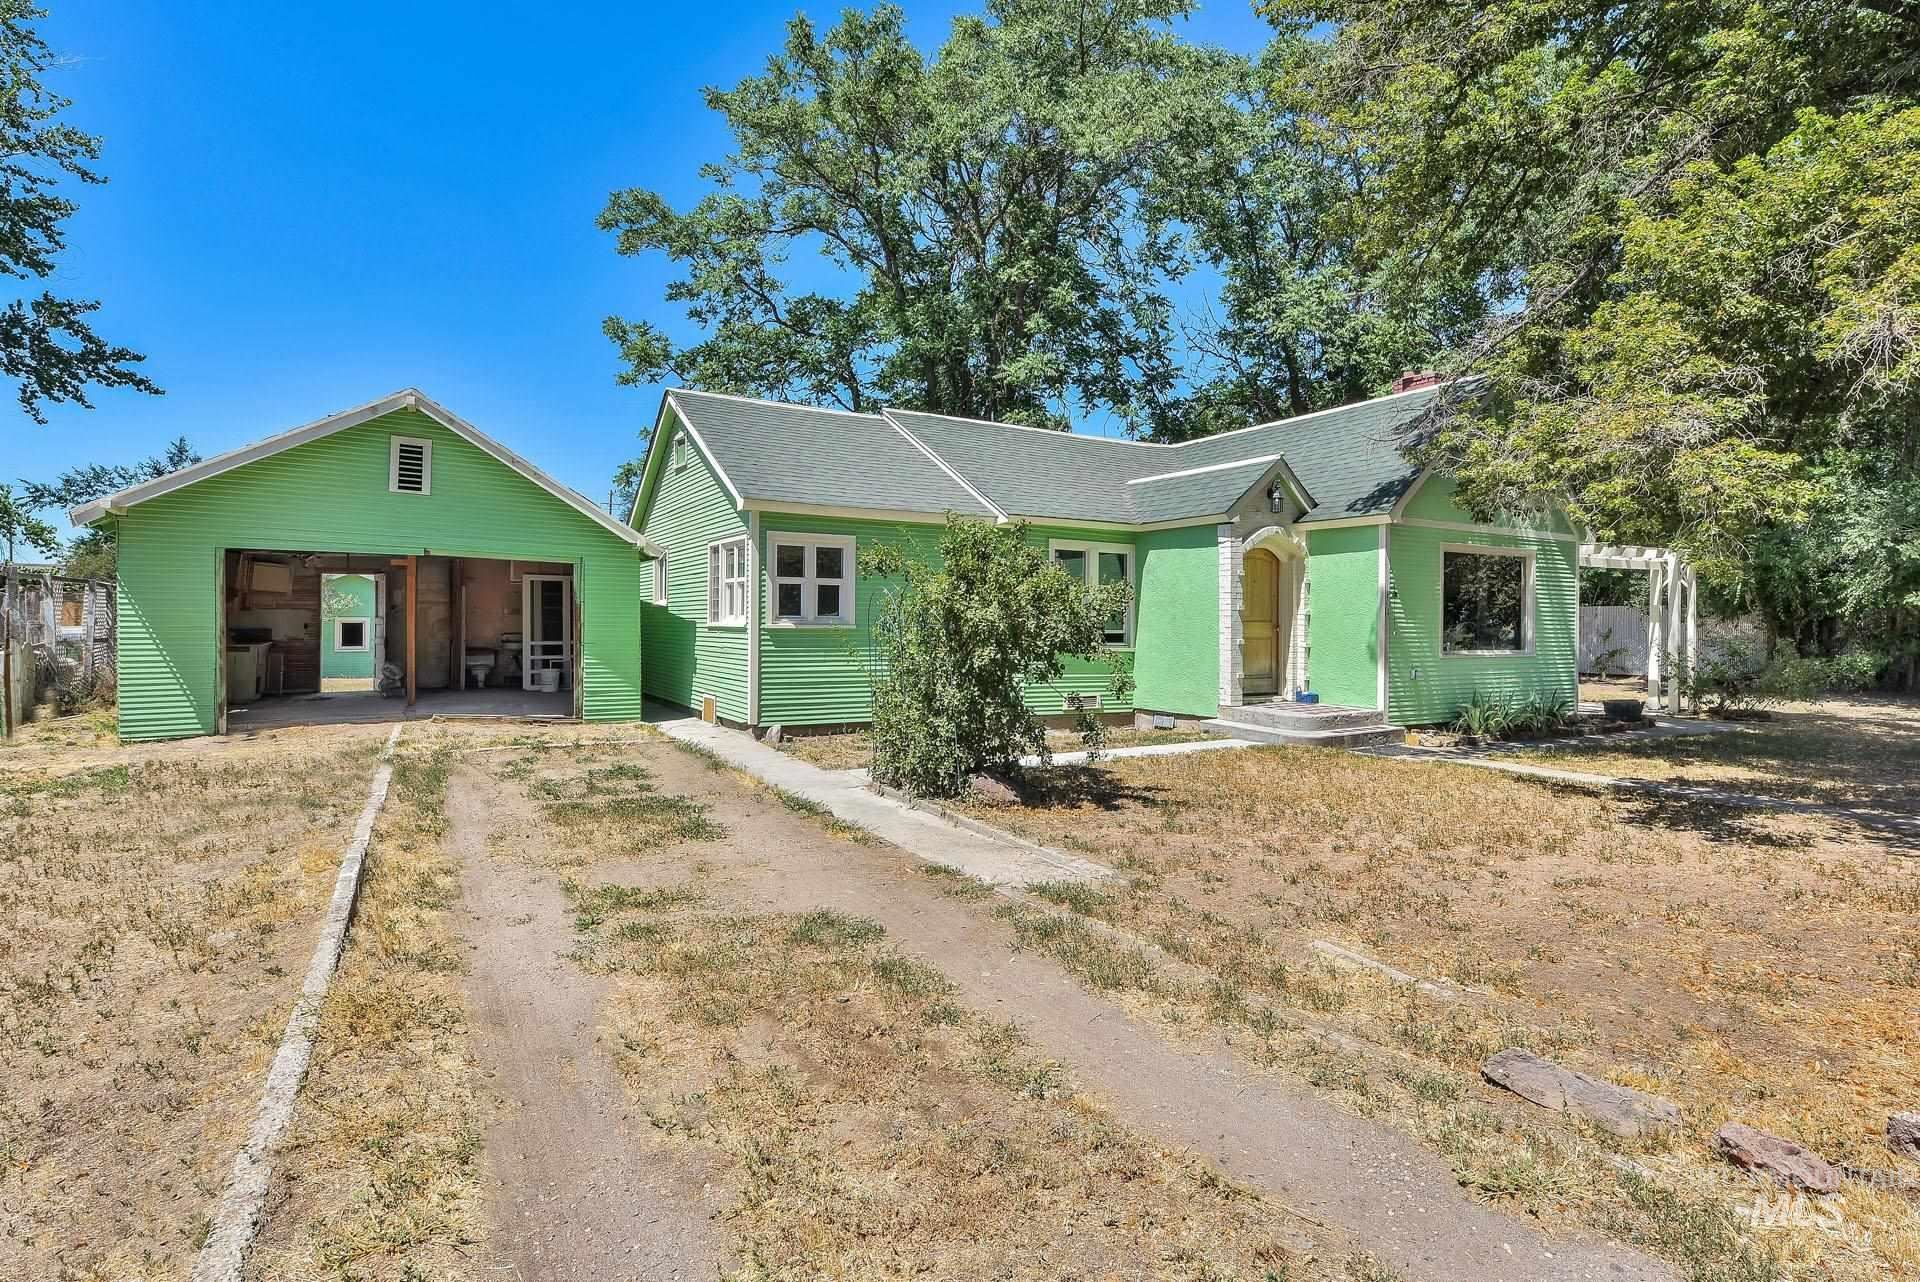 Photo of 14 1ST STREET S, Marsing, ID 83639 (MLS # 98791154)